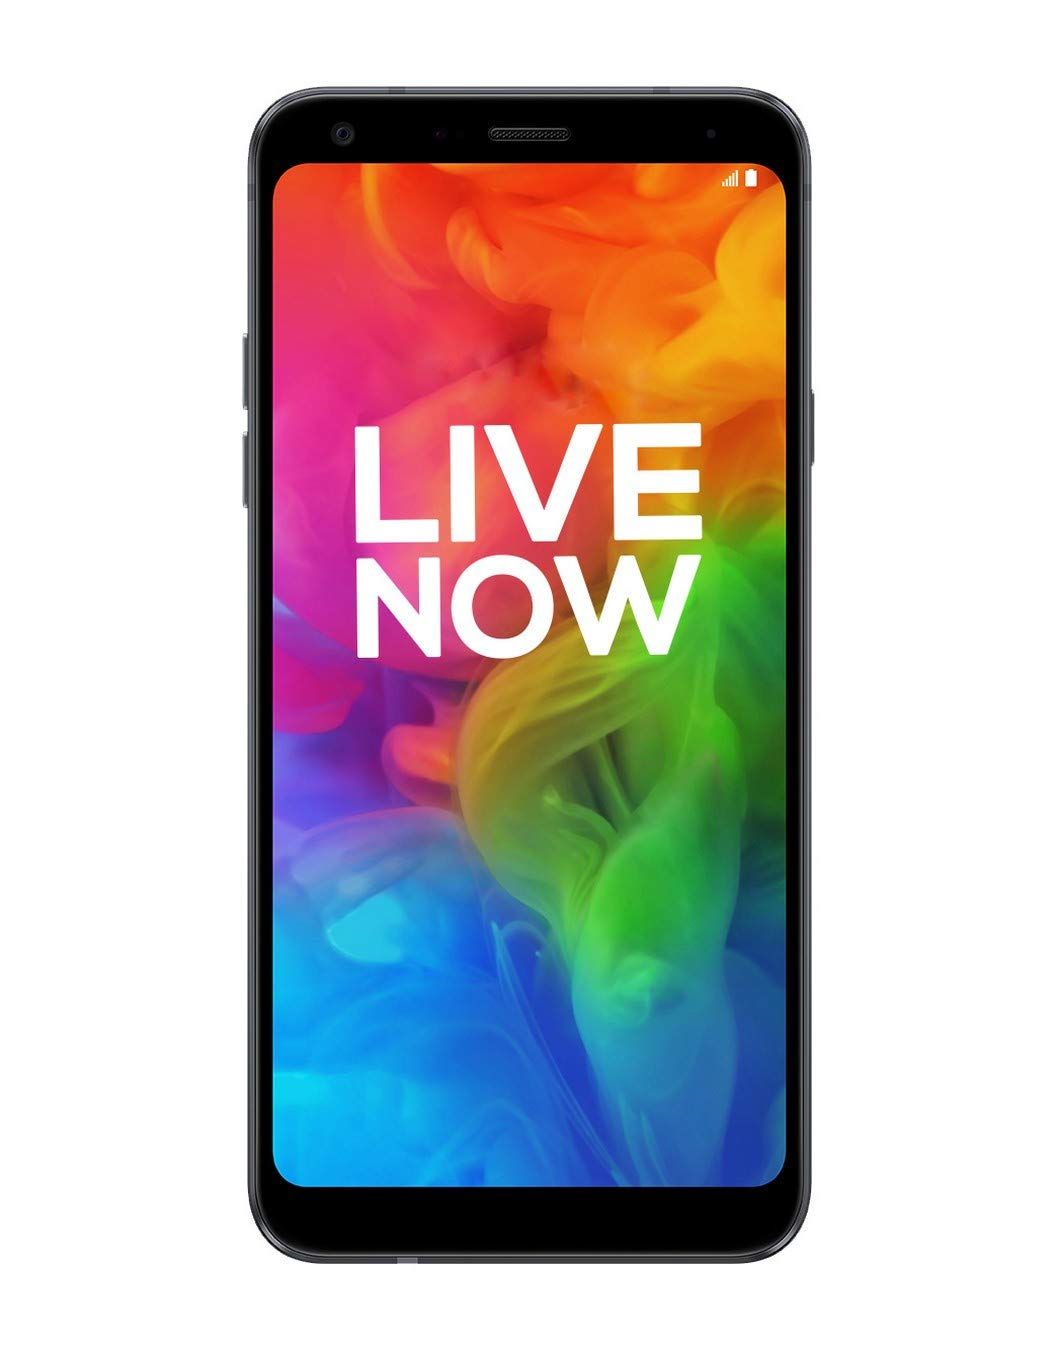 4. LG Q7 (Aurora Black, 3GB RAM, 32GB Storage)